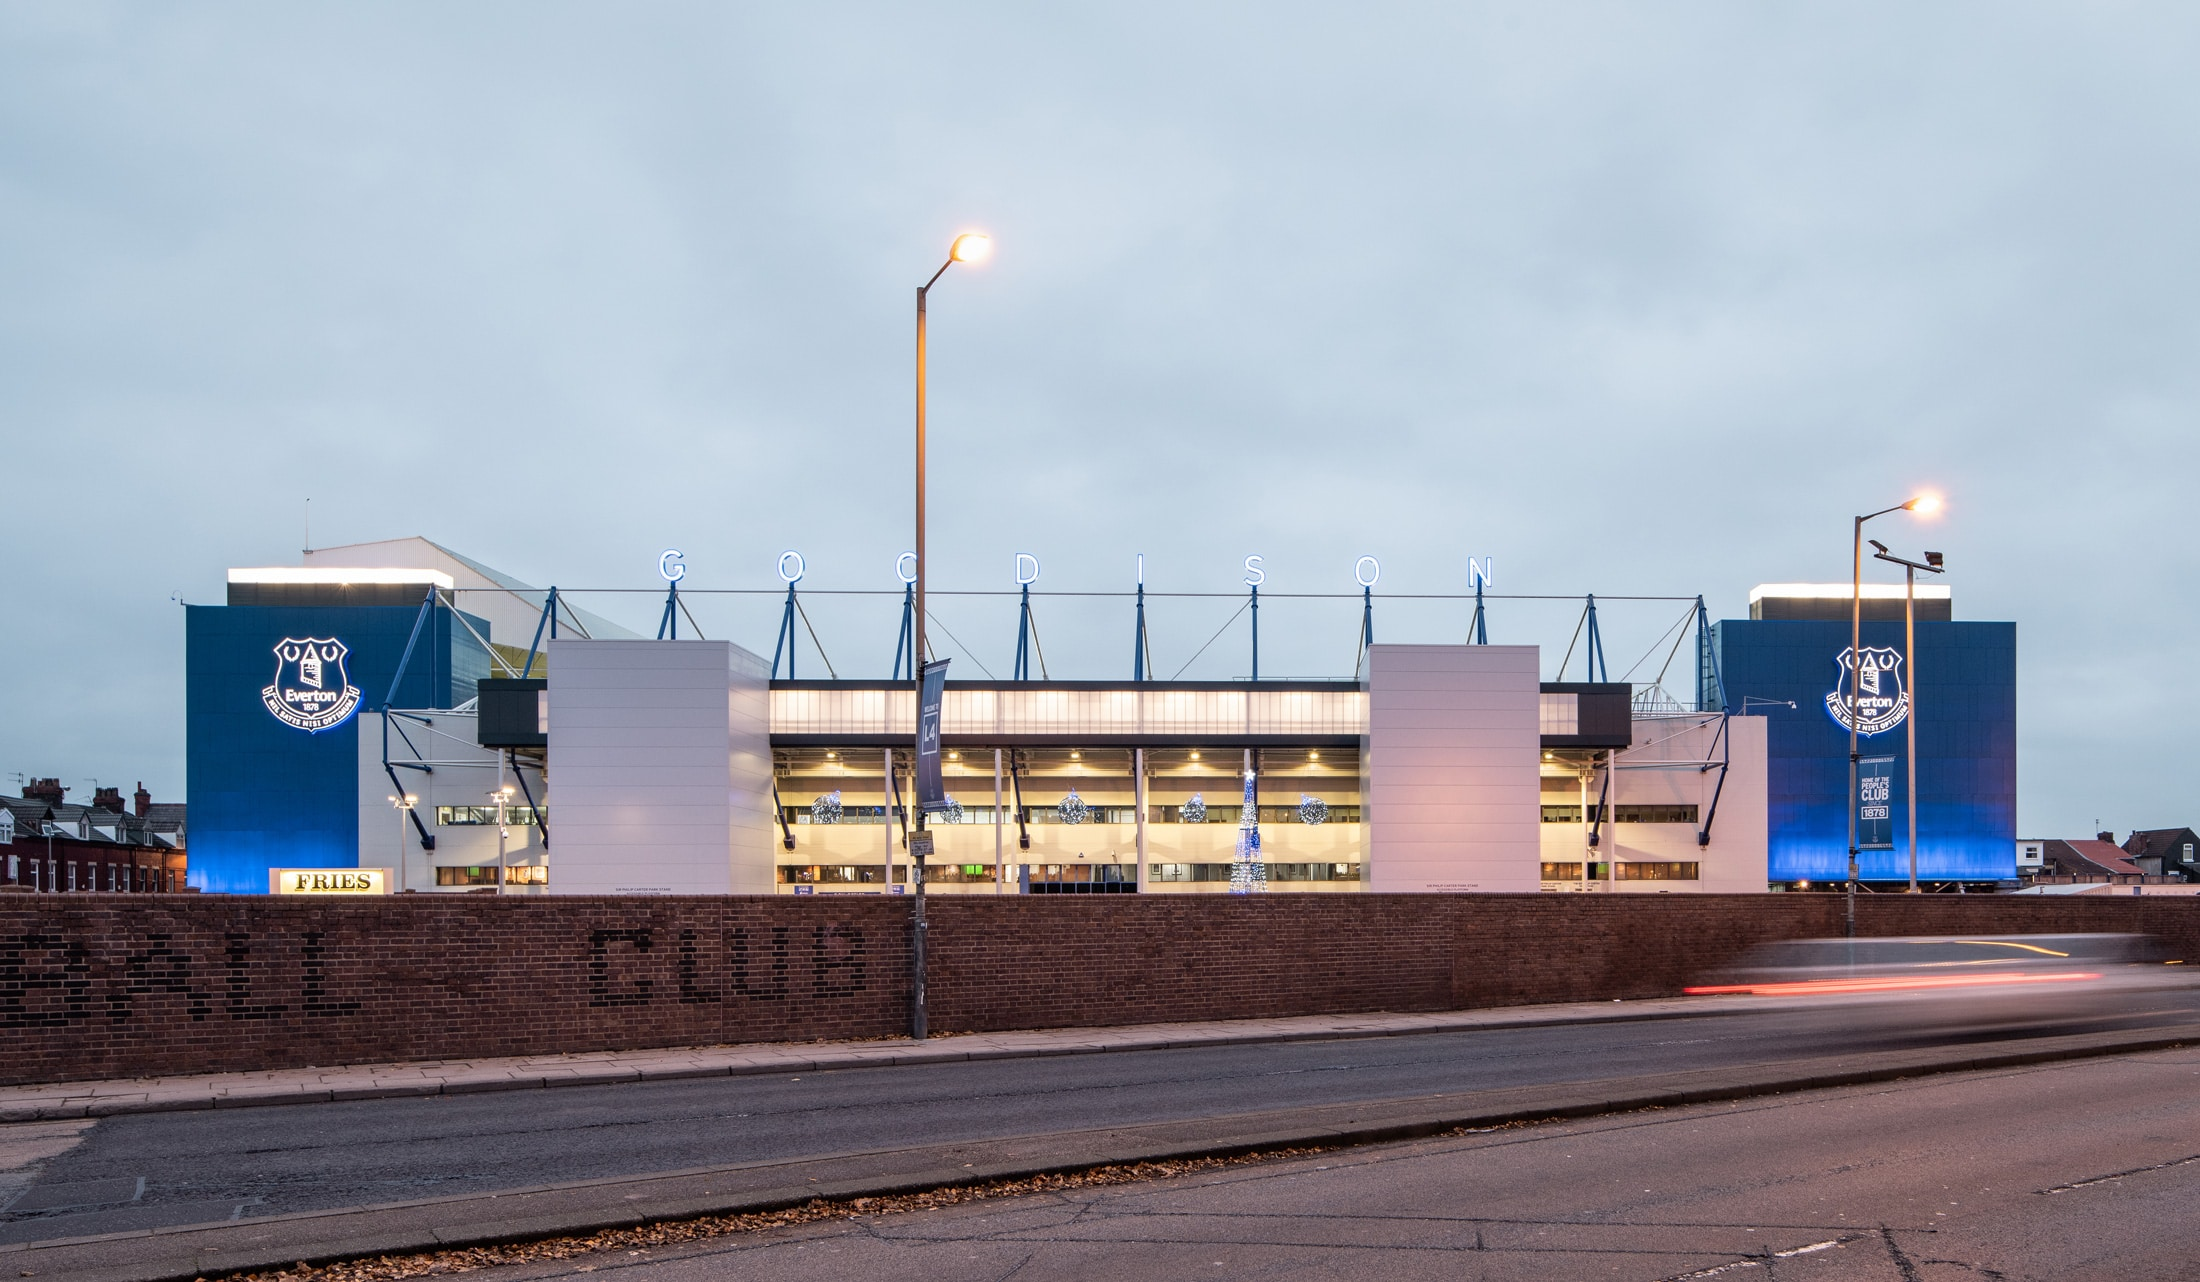 https://wooarchitects.com/wp-content/uploads/2019/11/Goodison-Park-photo-by-Tom-Bird-Lead.jpg